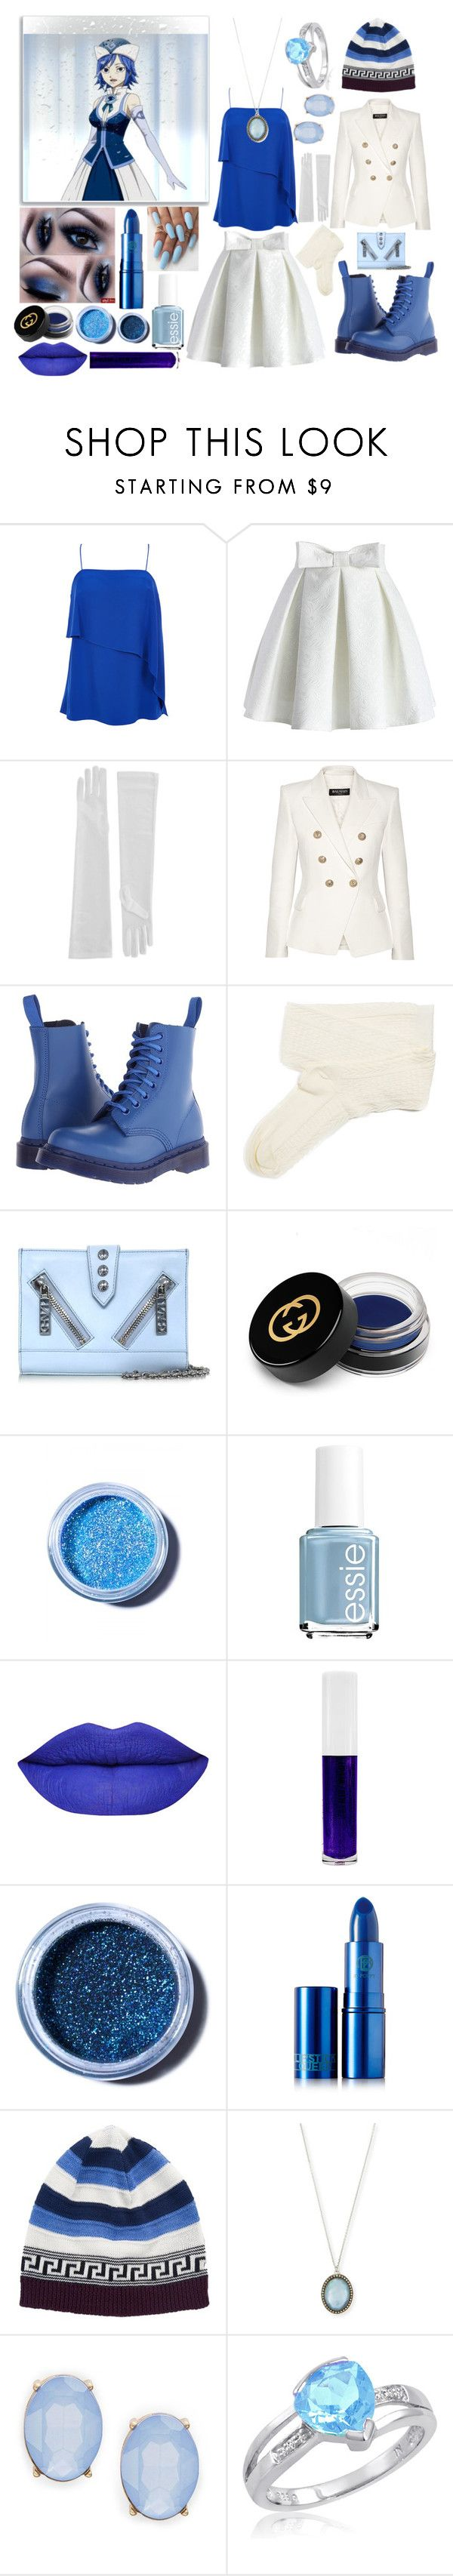 """""""Fairy Tail Juvia / casual outfit"""" by stormtrooper117 ❤ liked on Polyvore featuring Juvia, TIBI, Chicwish, Balmain, Dr. Martens, Fevrie, Kenzo, Gucci, Lime Crime and Essie"""